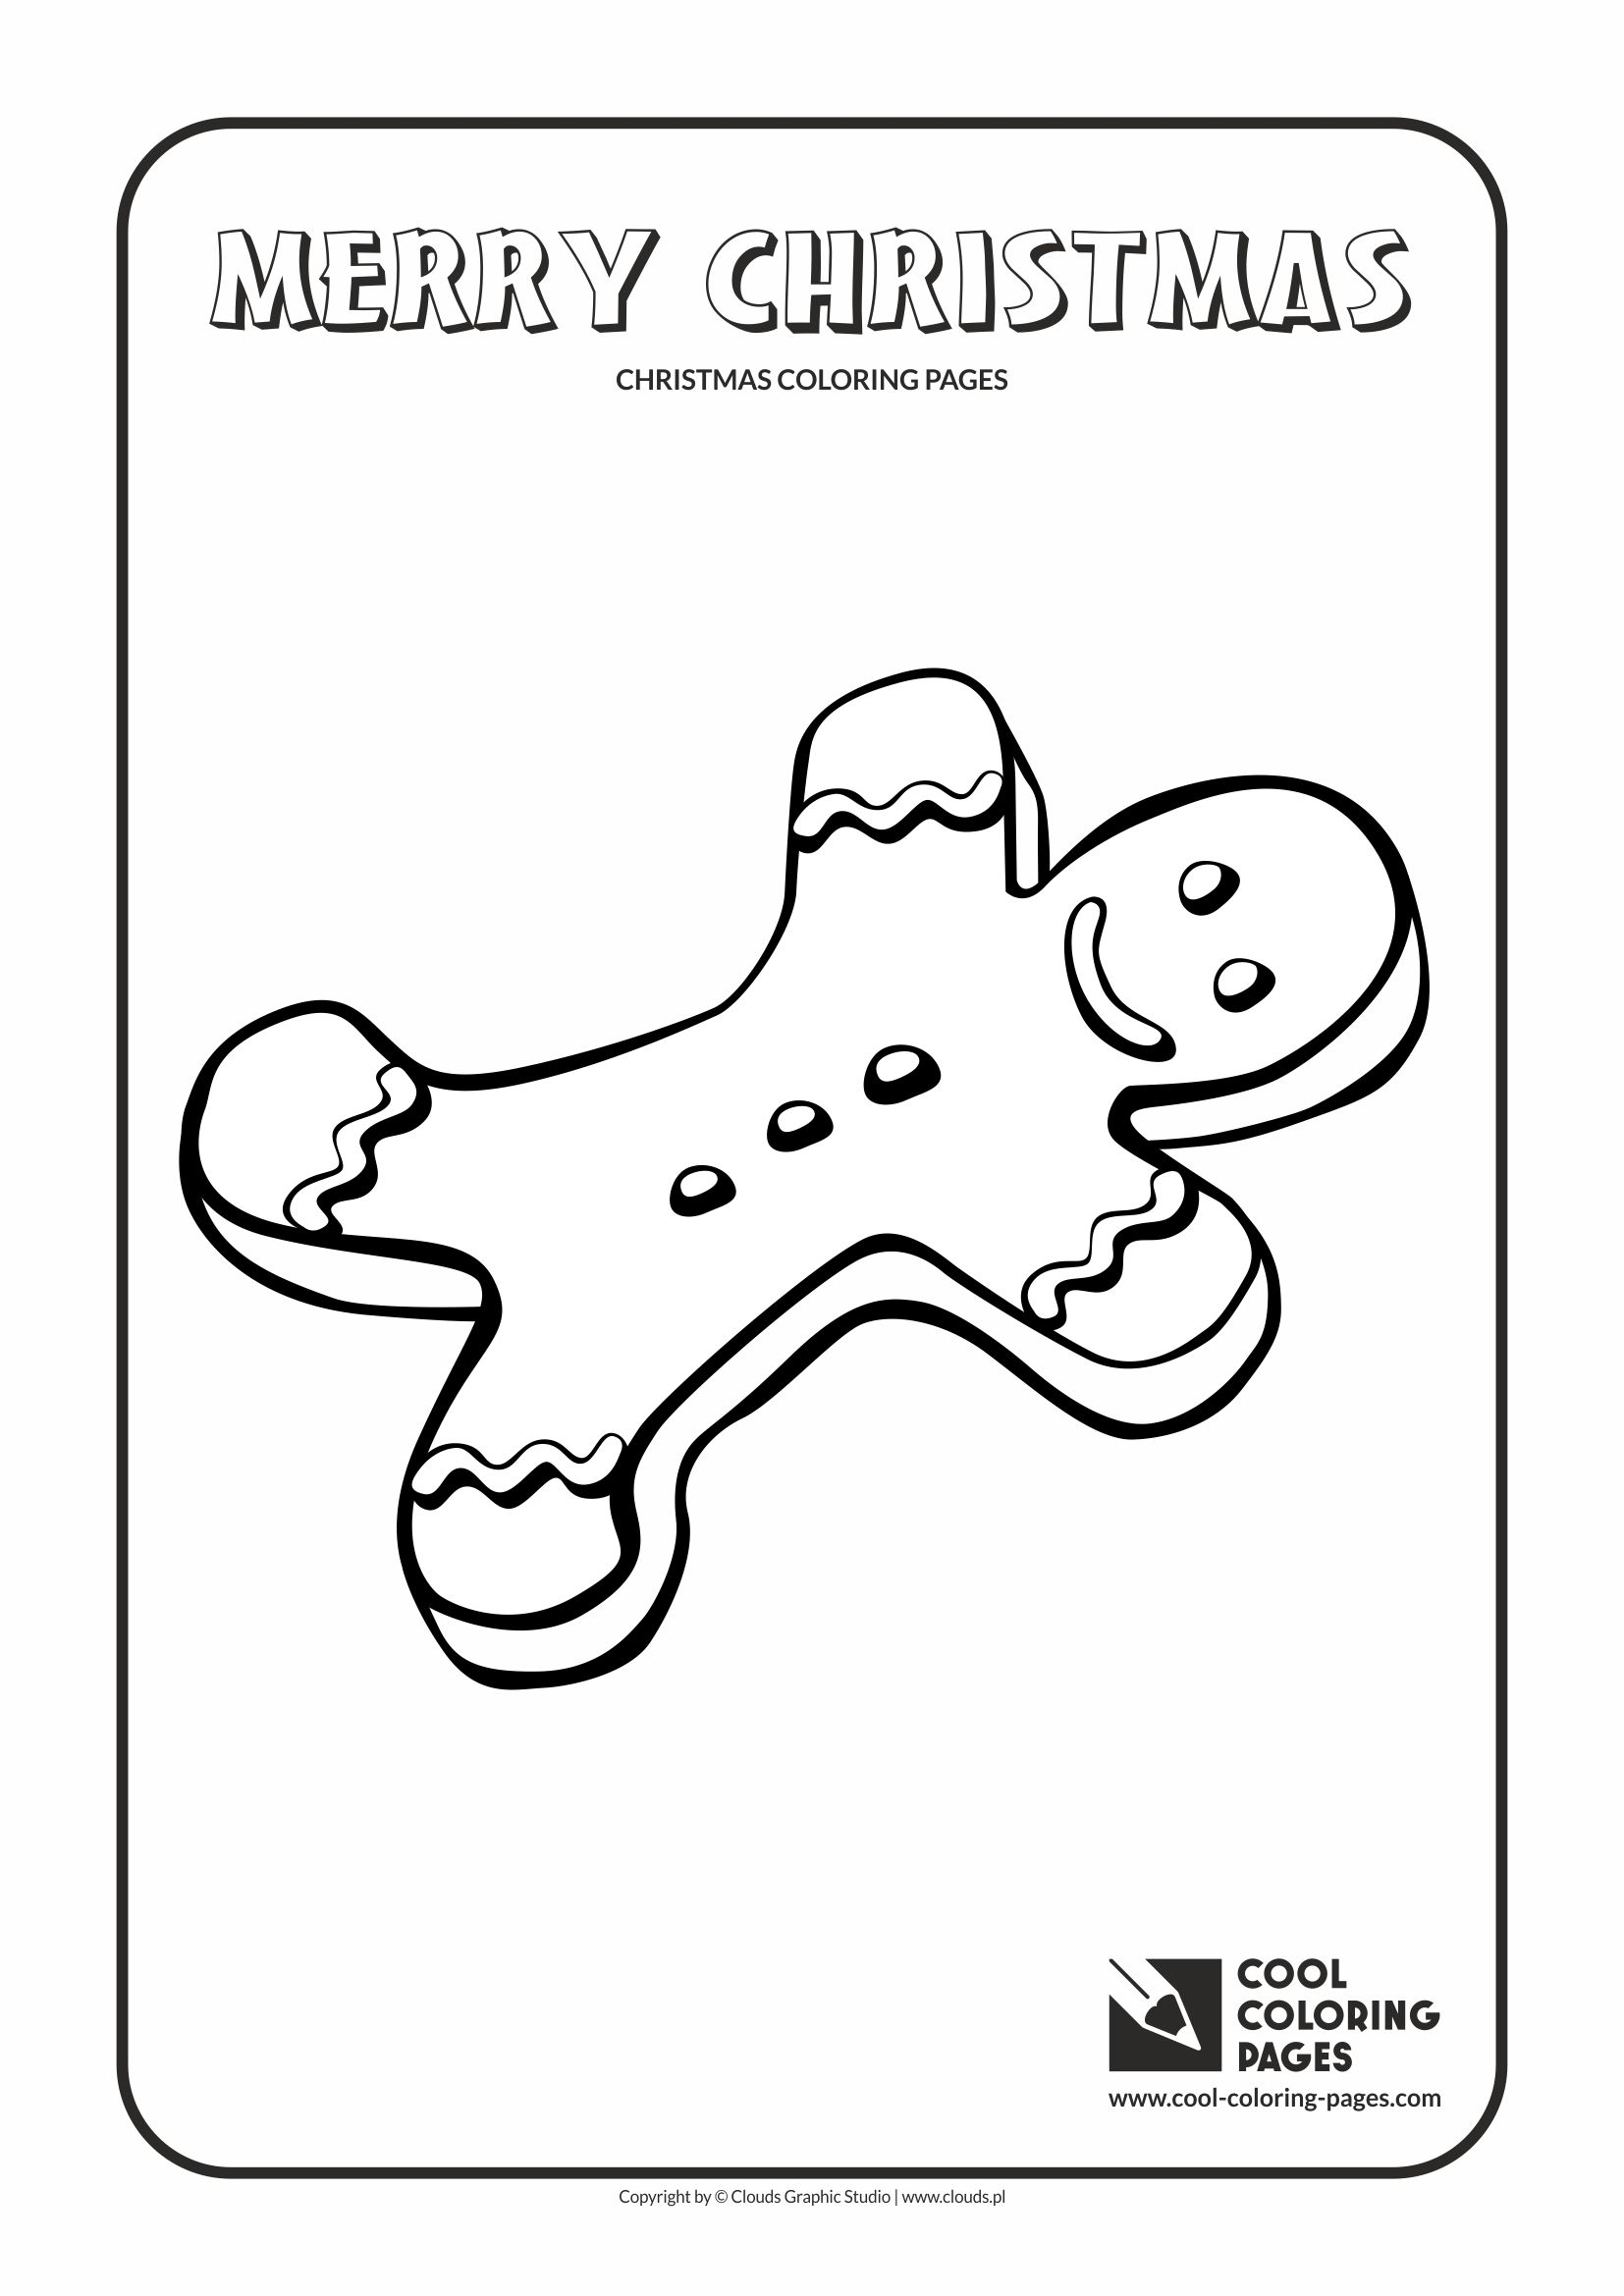 holidays coloring pages cool coloring pages